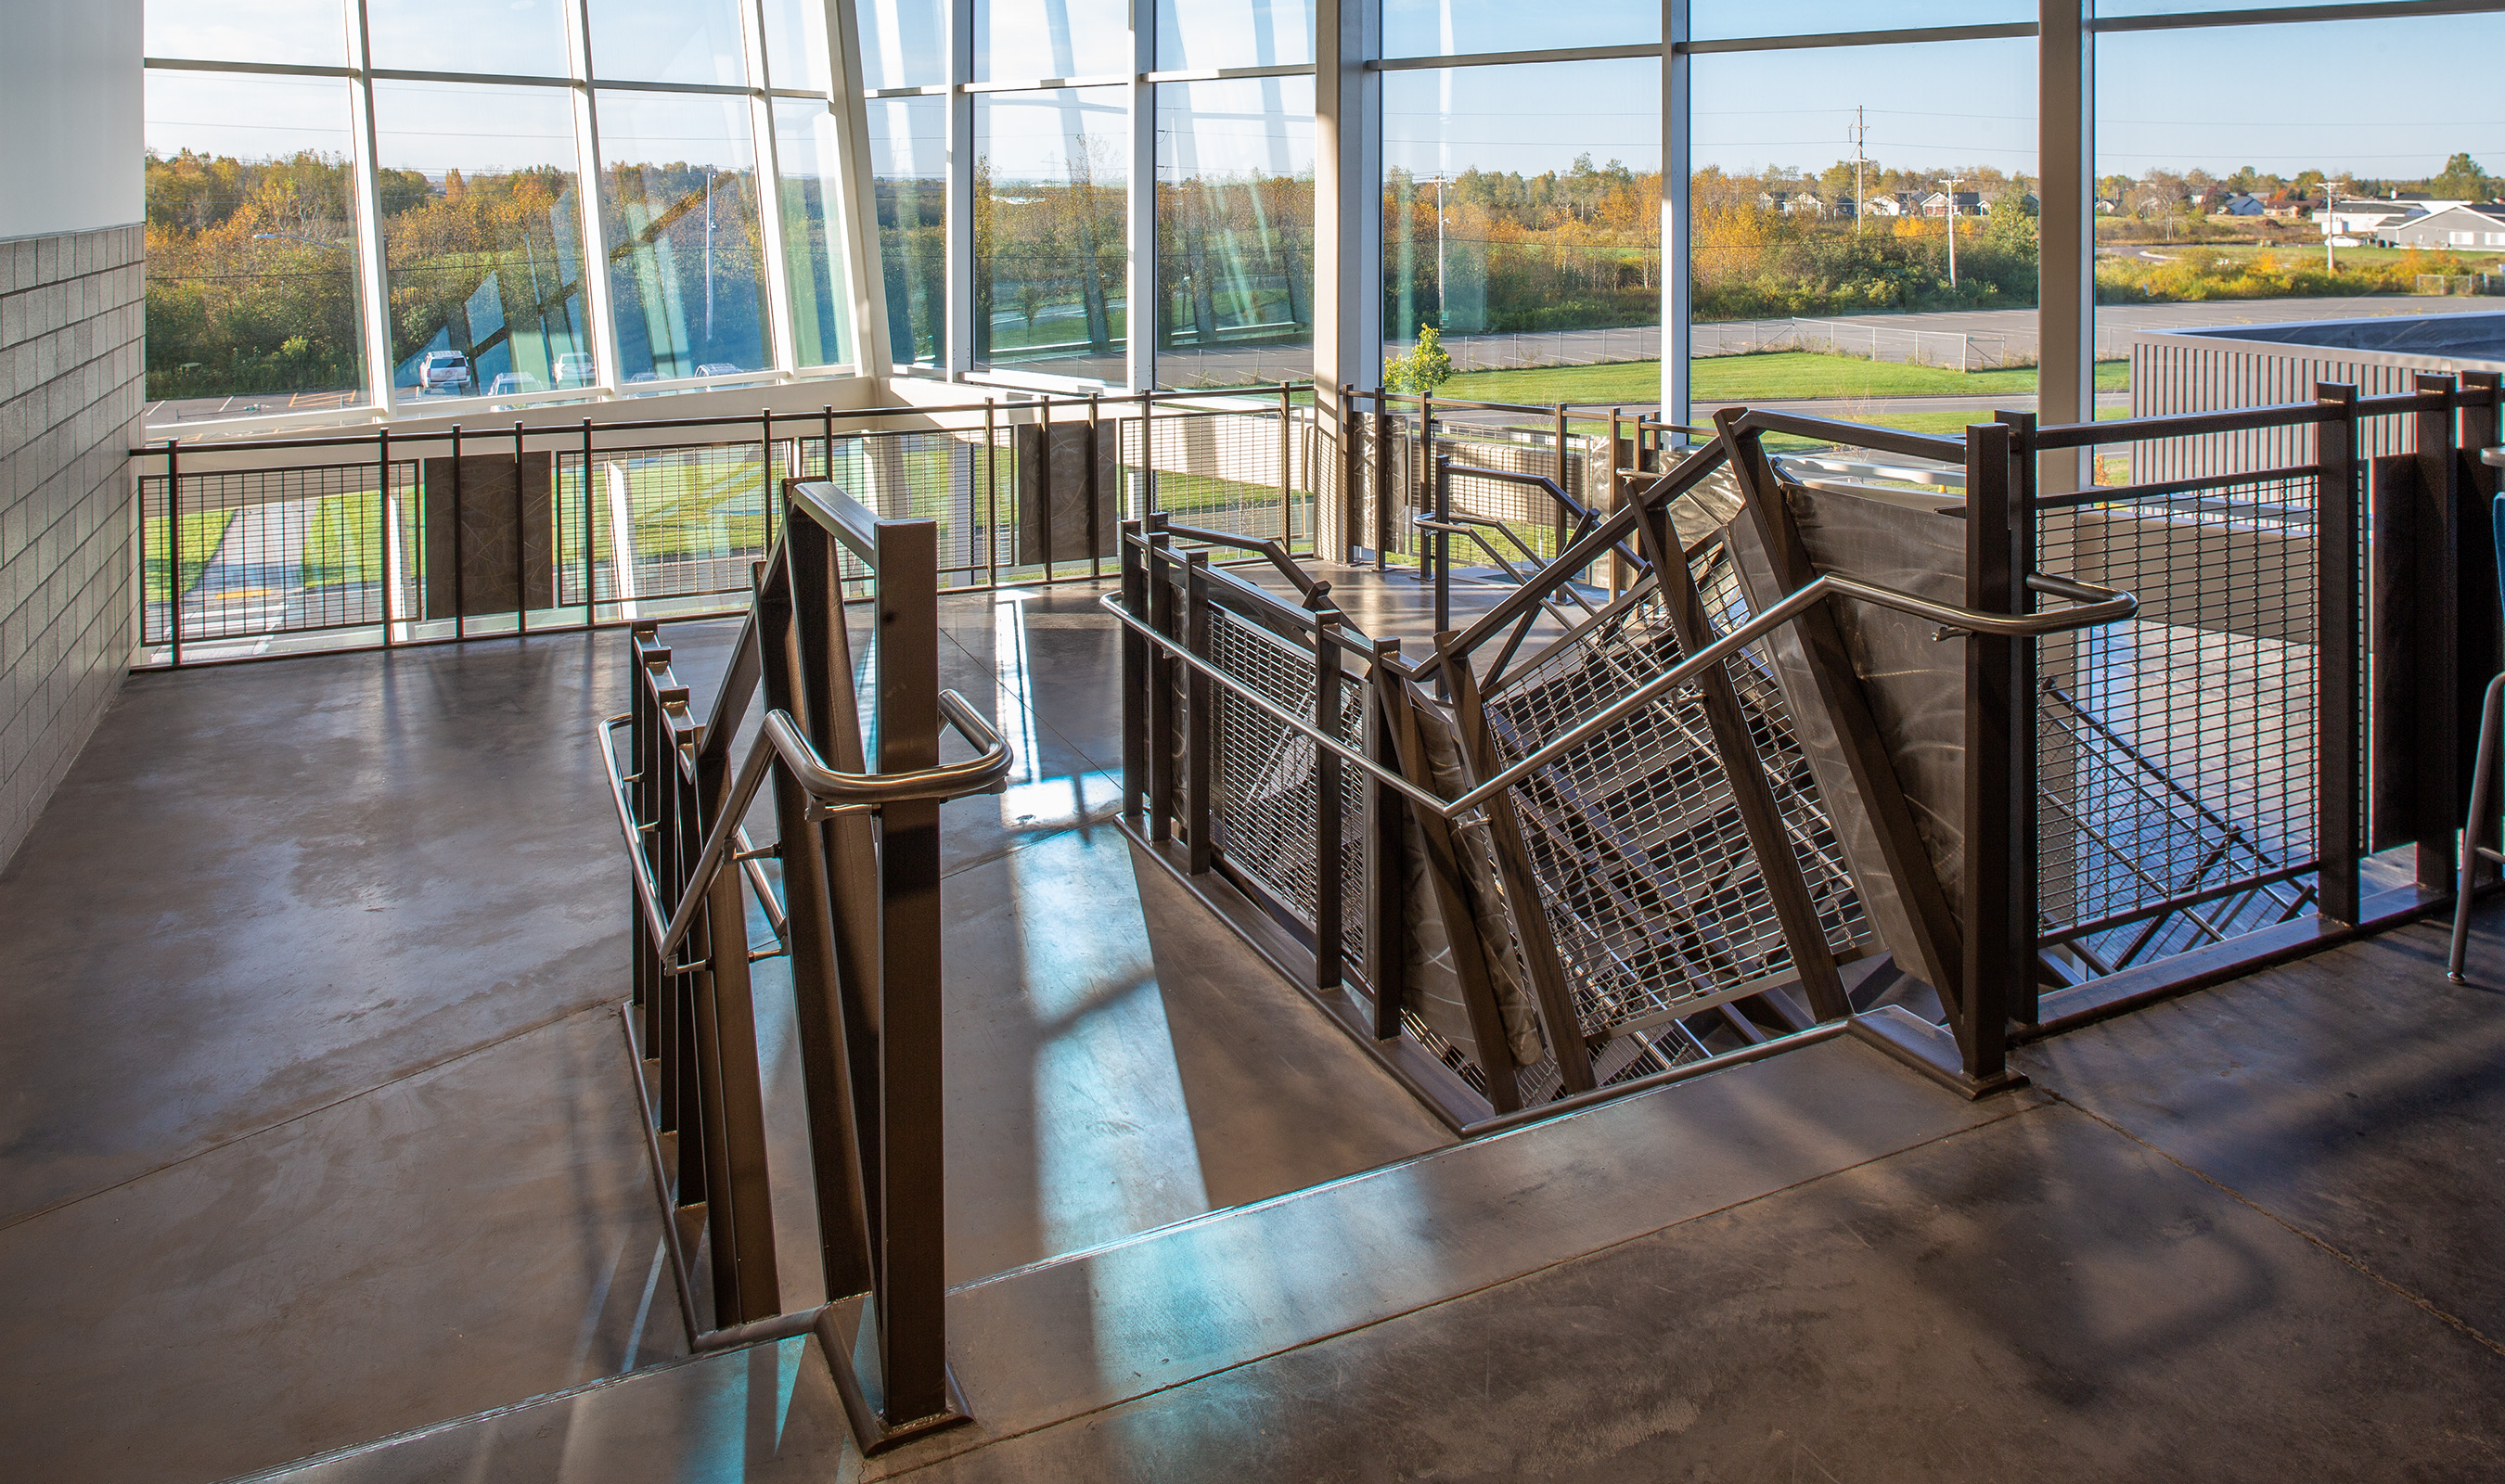 The design and large percent open area of Banker Wire's M13Z-7 woven wire mesh pattern provides uniterrupted sight lines while still providing the safety and sturdiness of railing infill.